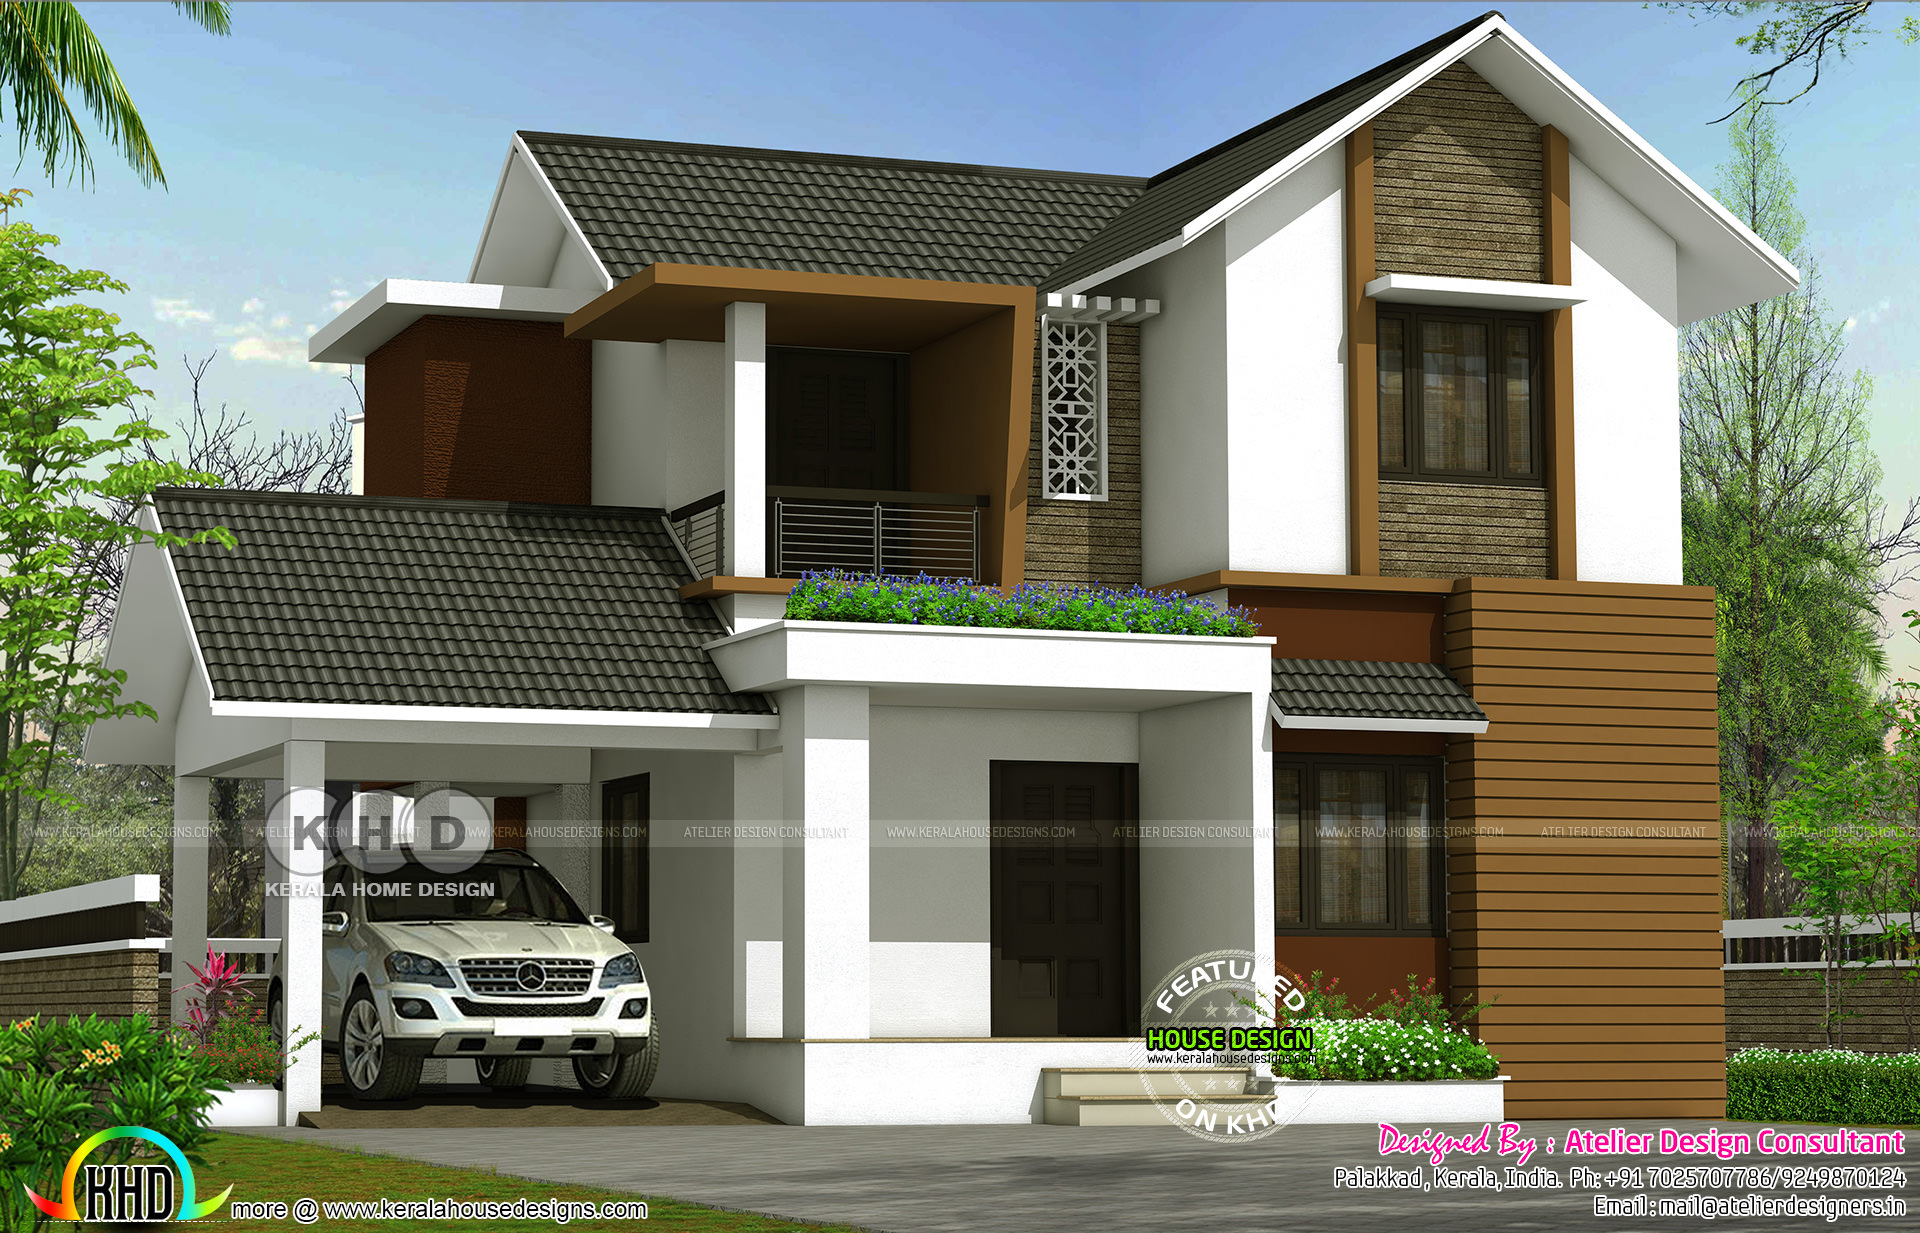 4 Bedroom Mixed Roof Home Part - 16: No. Of Bedrooms : 4. Design Style : Modern Client :Rasheed Variyathodi.  Location: Mannarkkad ,Palakkad Estimated Cost :32 Lakh* ($50,000) (AED  184,000) ...